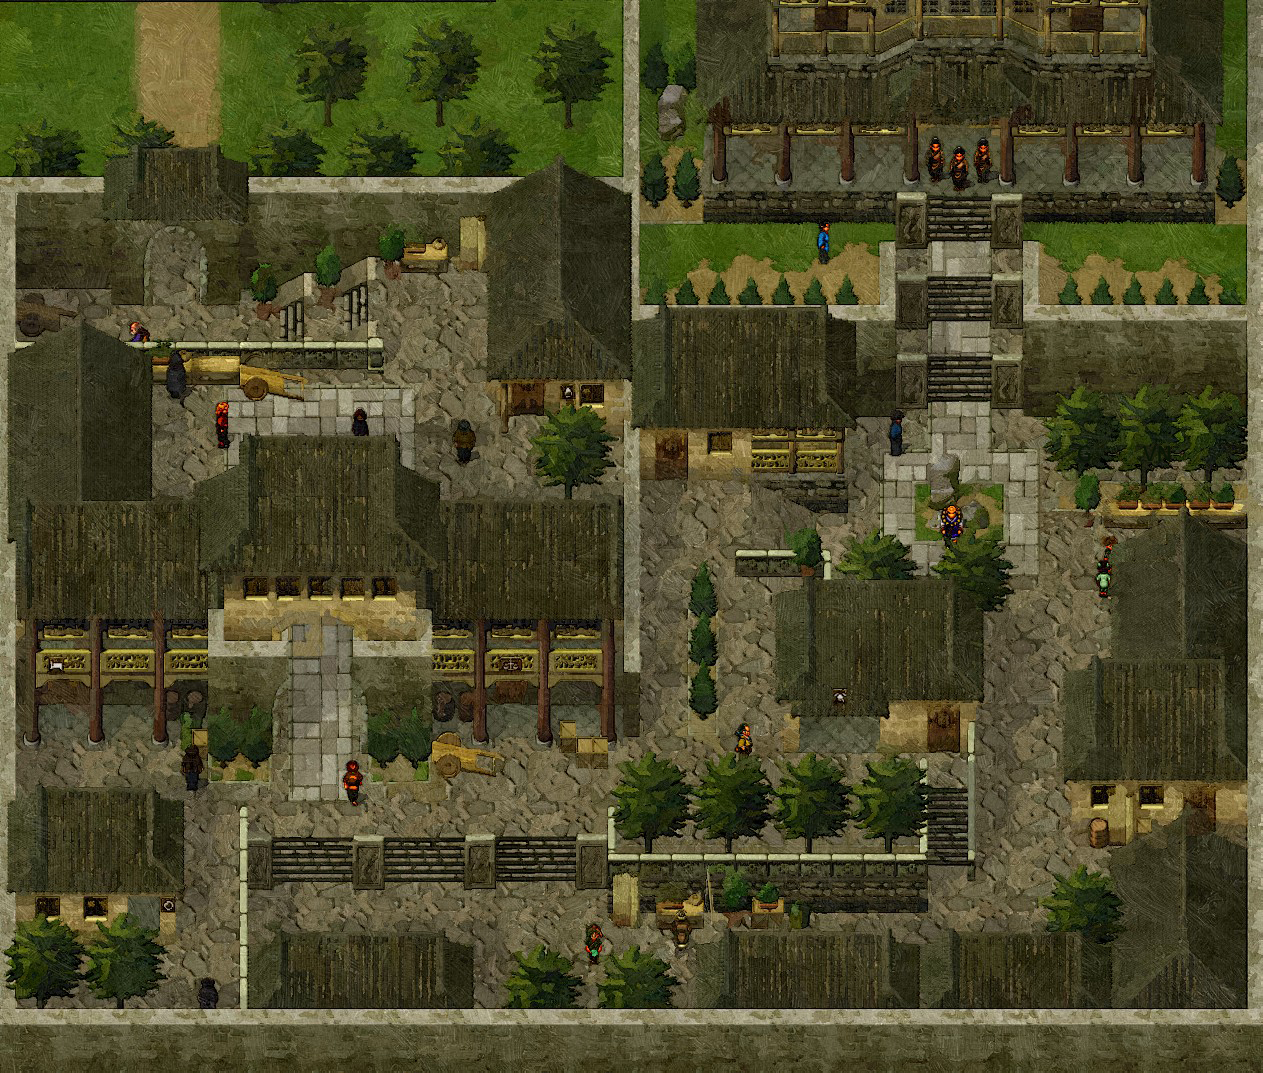 Category:Suikoden II Locations | Suikoden Wikia | FANDOM powered by ...